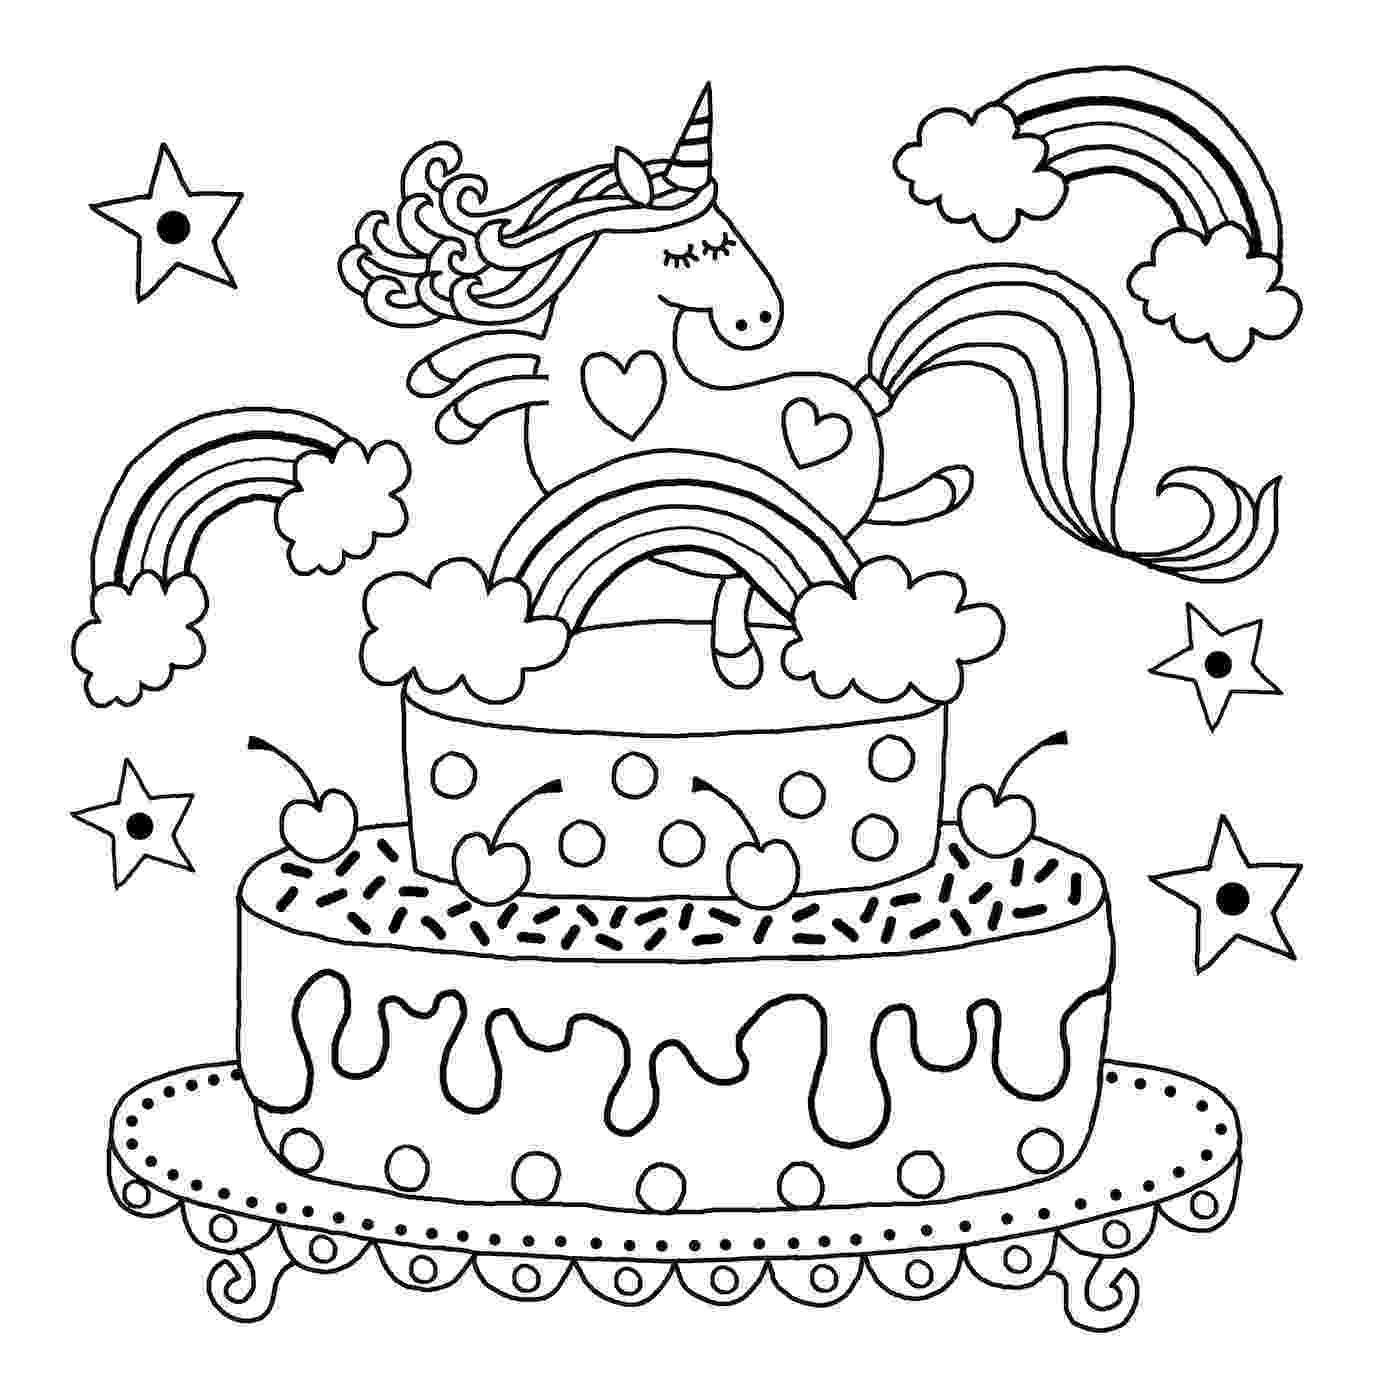 unicorn coloring pictures unicorn colouring book pages 3 michael o39mara books unicorn coloring pictures